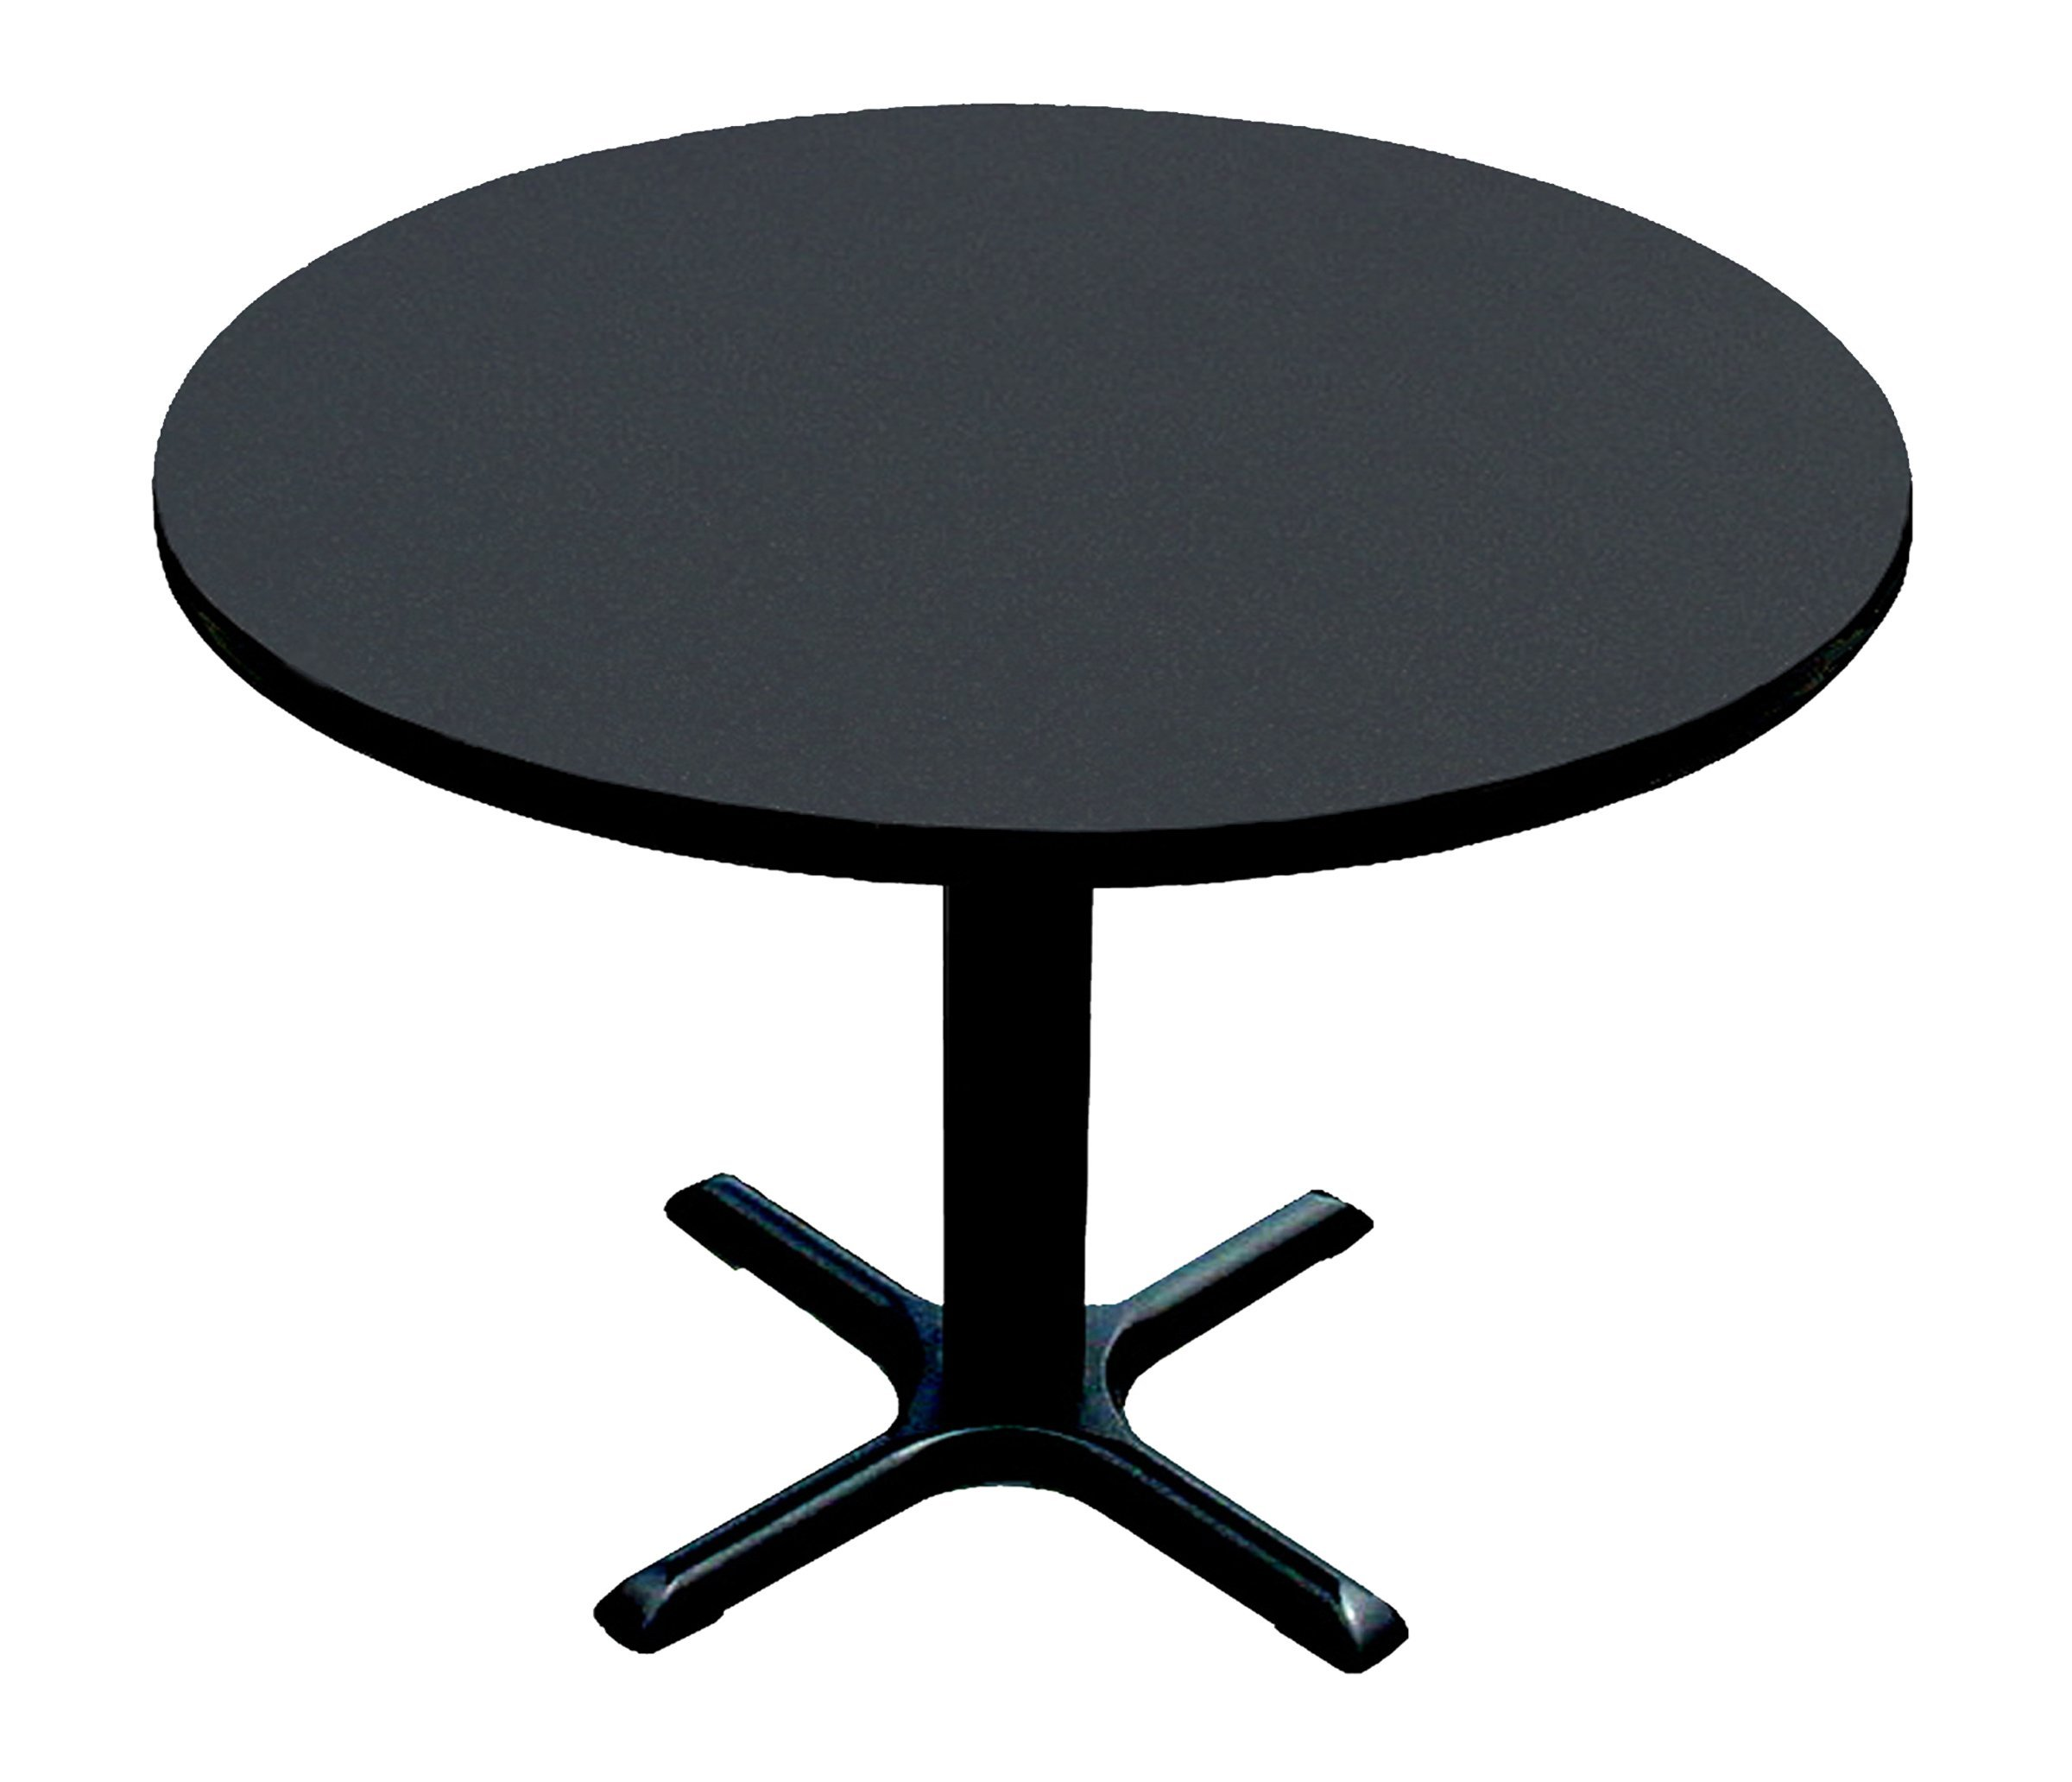 Correll BXT36R-07 Black Granite Top and Black Base Round Bar, Café and Break Room Table, 36''